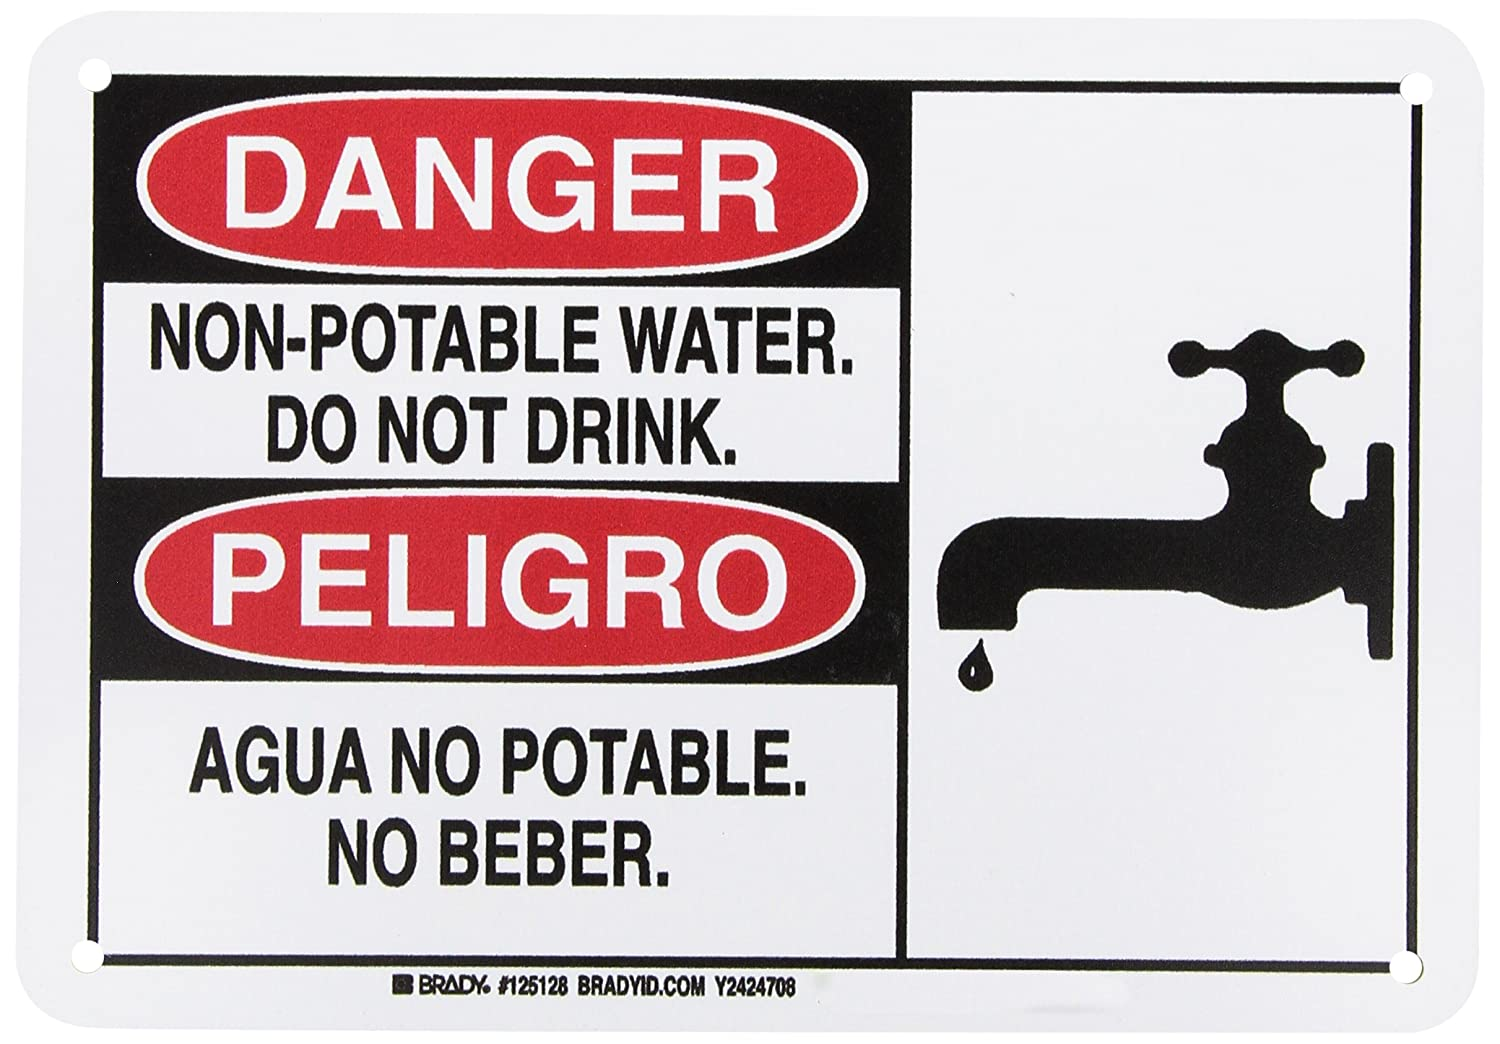 10 Length x 7 Height Aluminum Legend CAUTION NON POTABLE WATER DO NOT DRINK Black on Yellow NMC C361A OSHA Sign